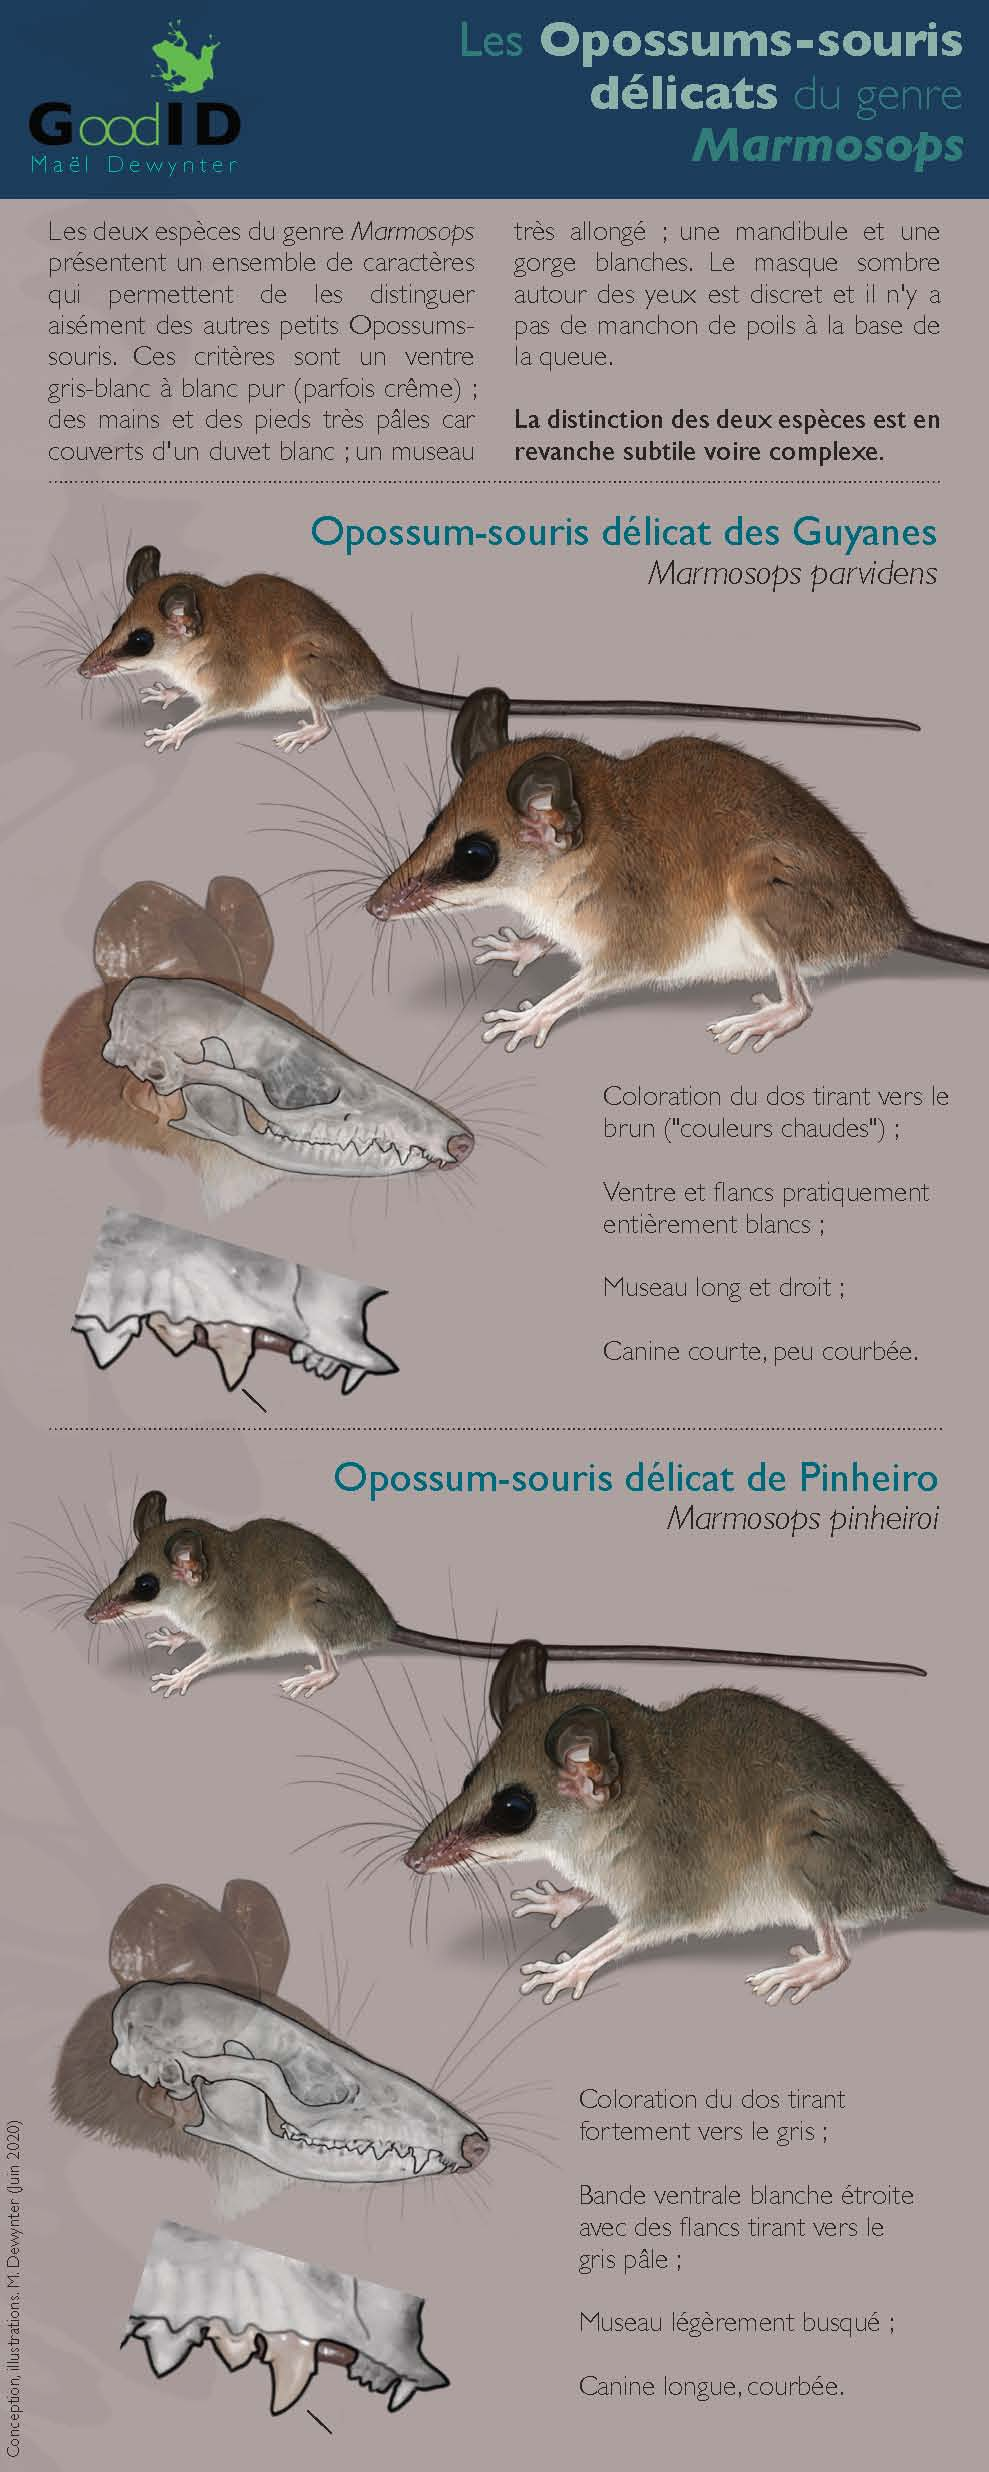 http://files.biolovision.net/www.faune-guyane.fr/userfiles/Documentsdivers/Mammifres/IdentificationdesMarmosopsv2020.jpg